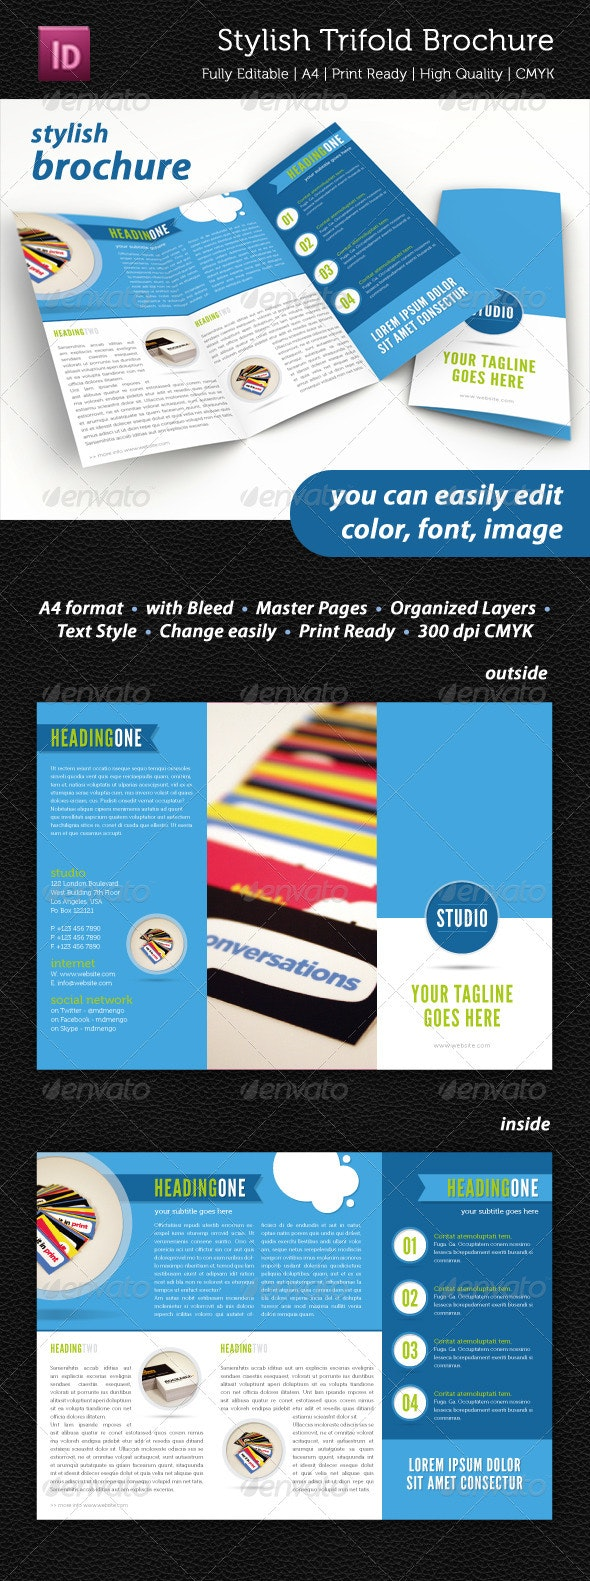 Stylish Trifold Brochure - Informational Brochures